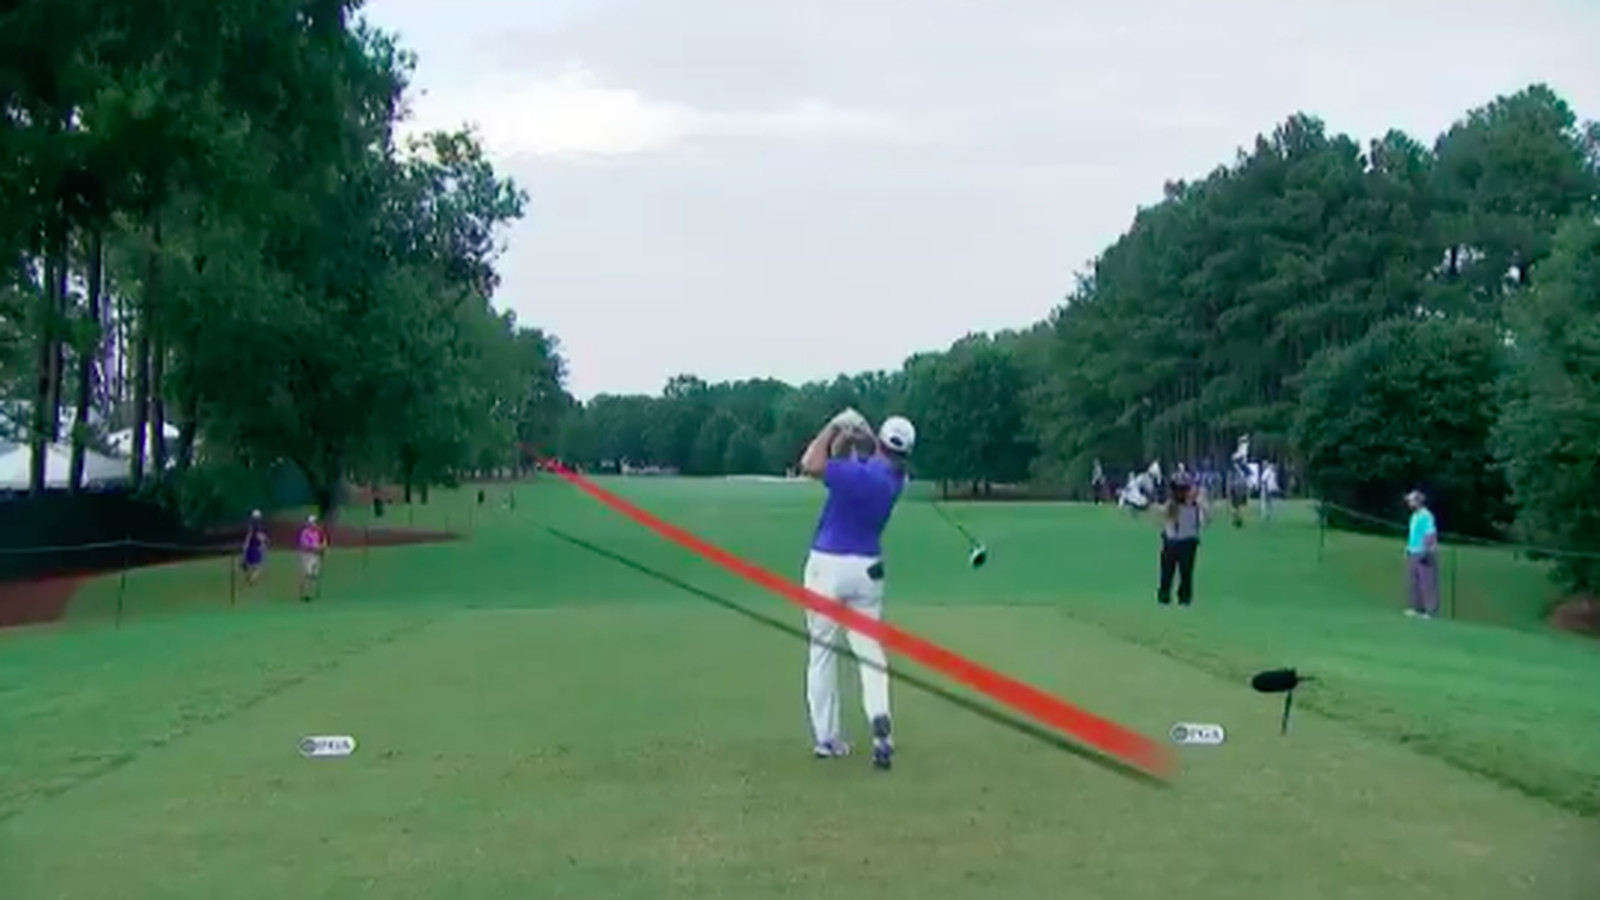 why did a pga tour pro intentionally shank a shot with a